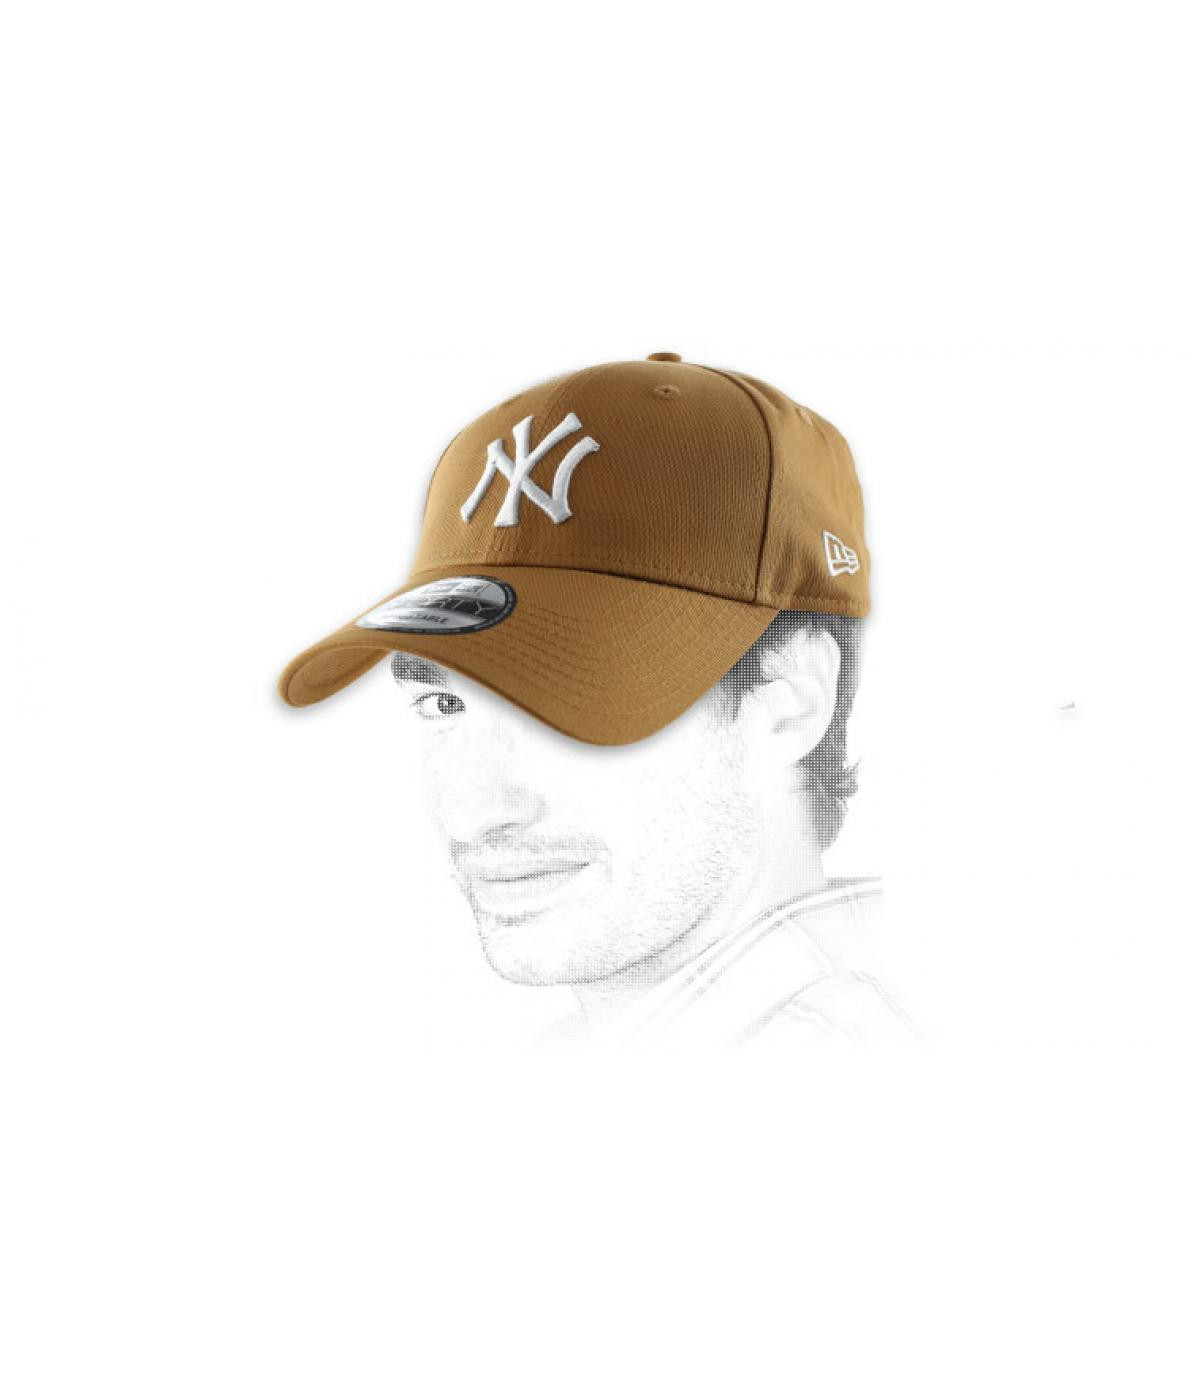 Beige cap NY embroidery